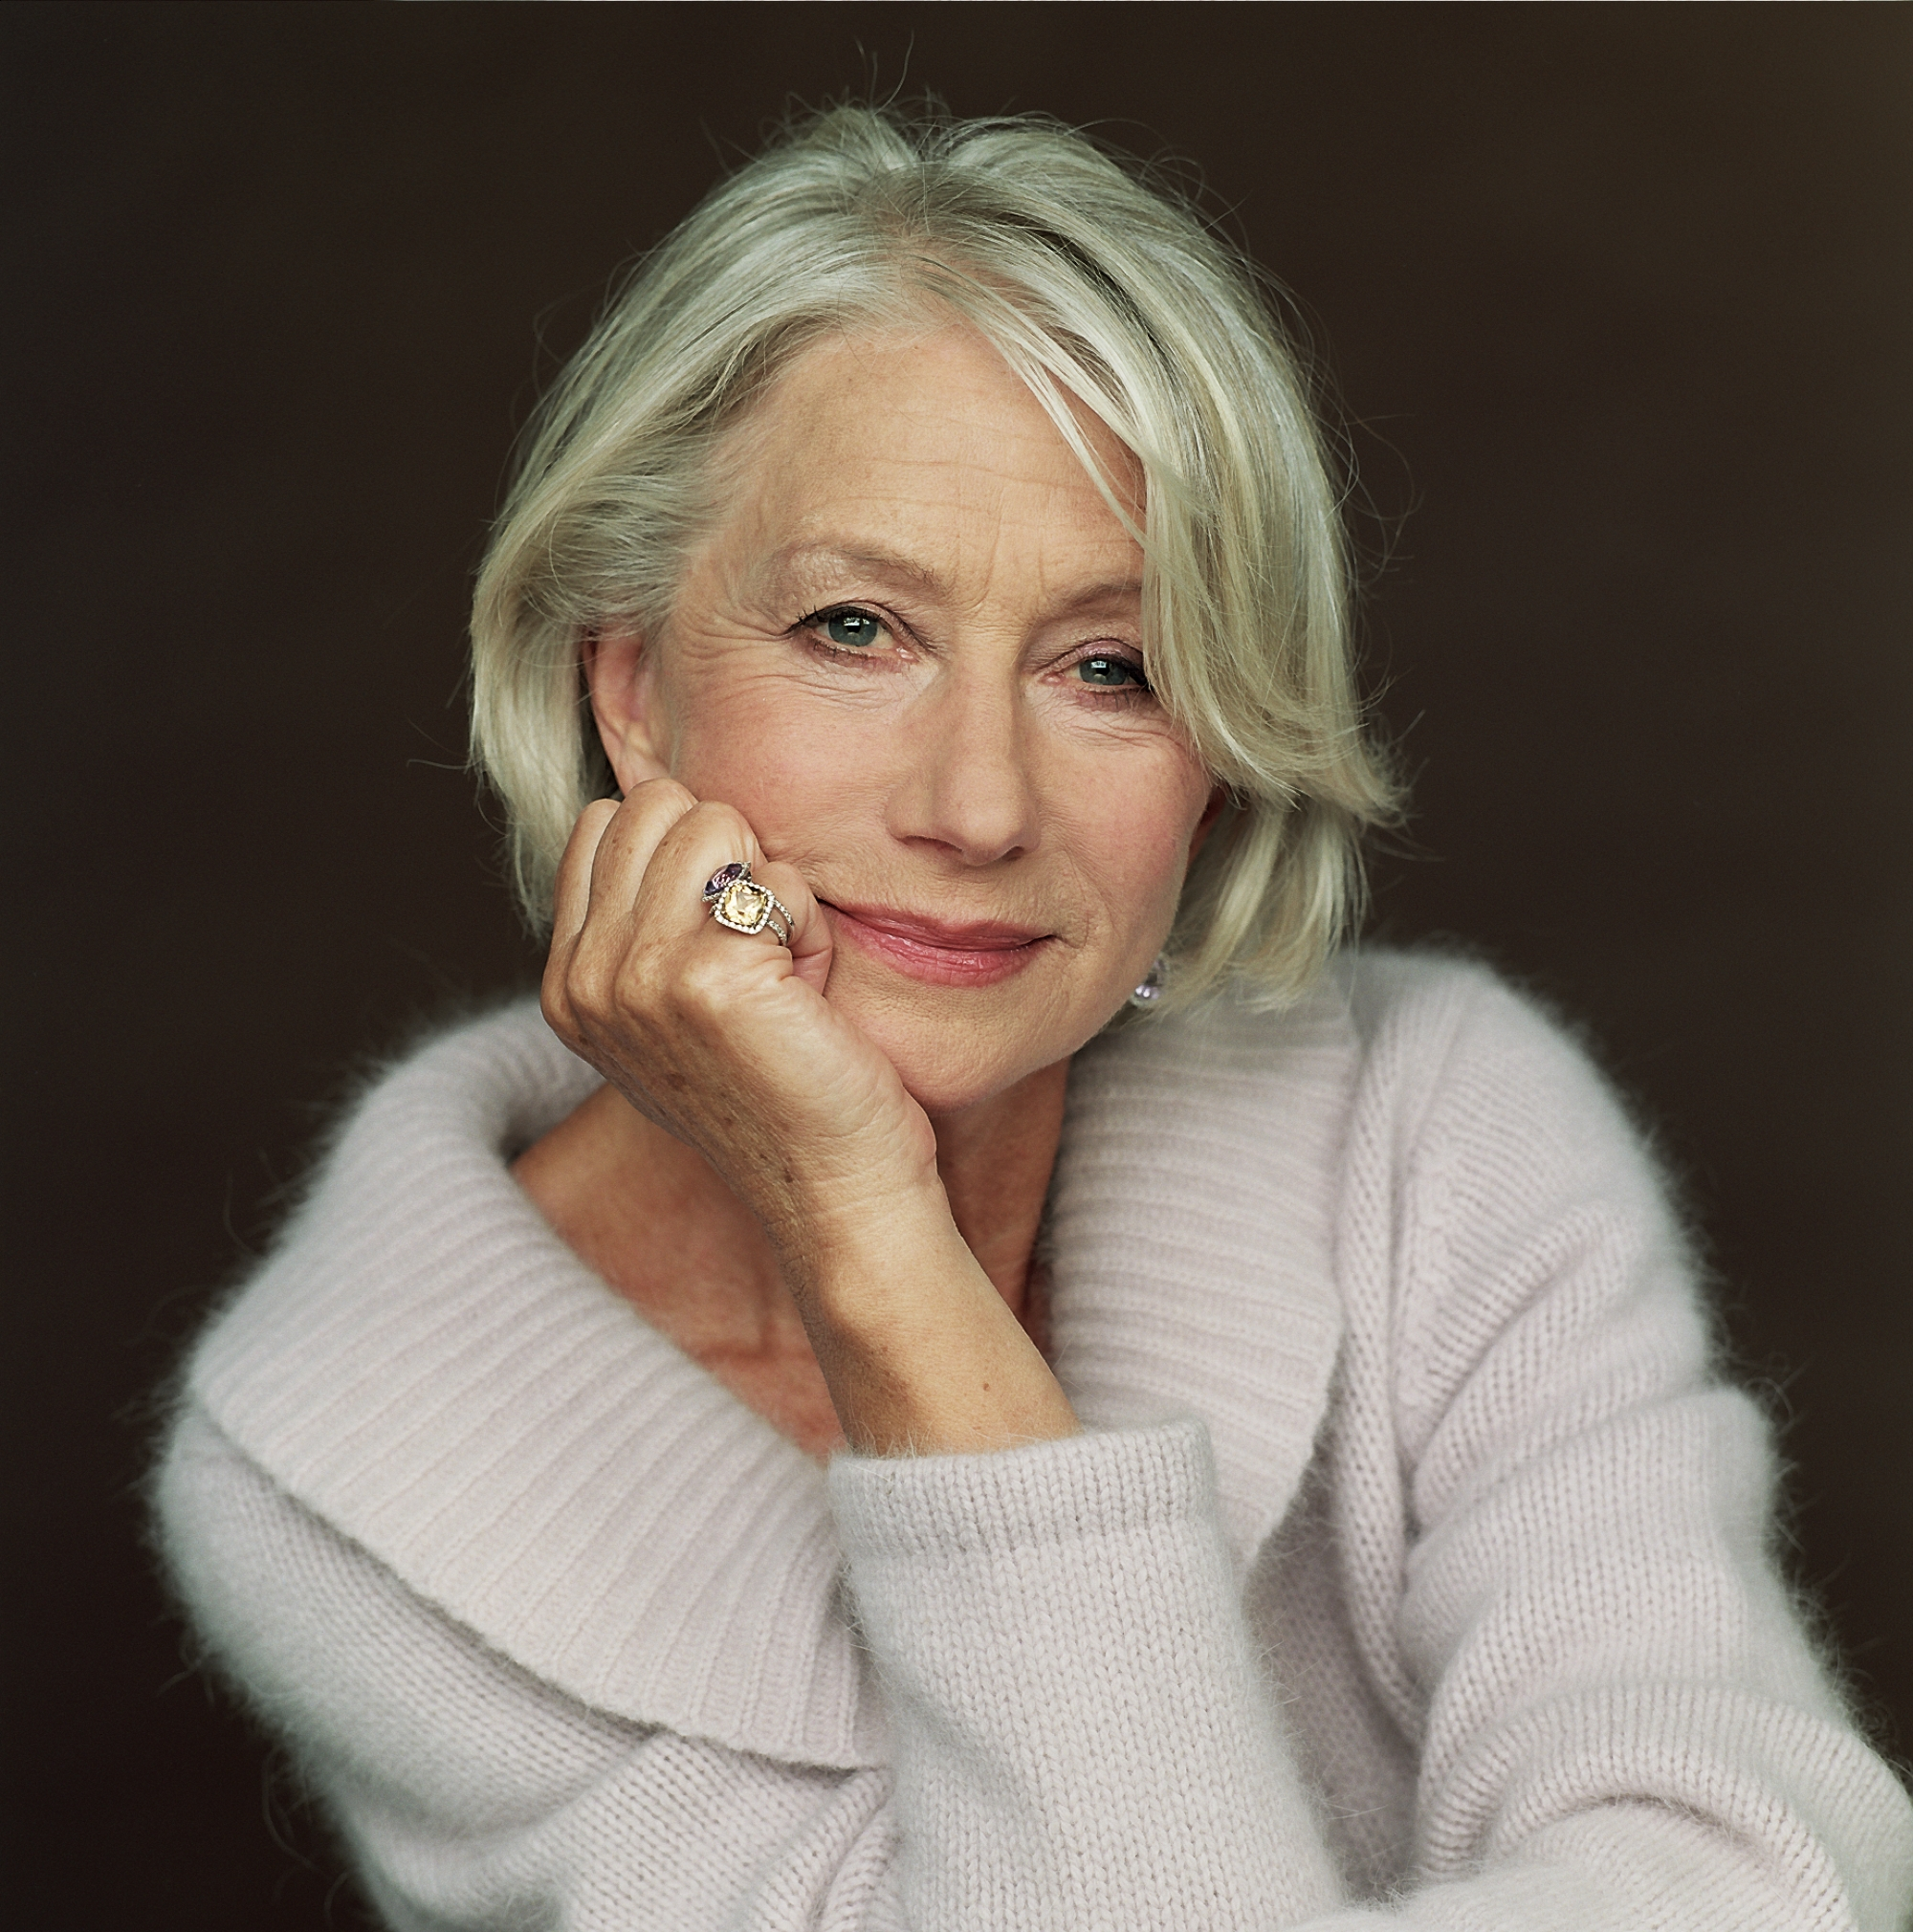 image Helen mirren in age of consent